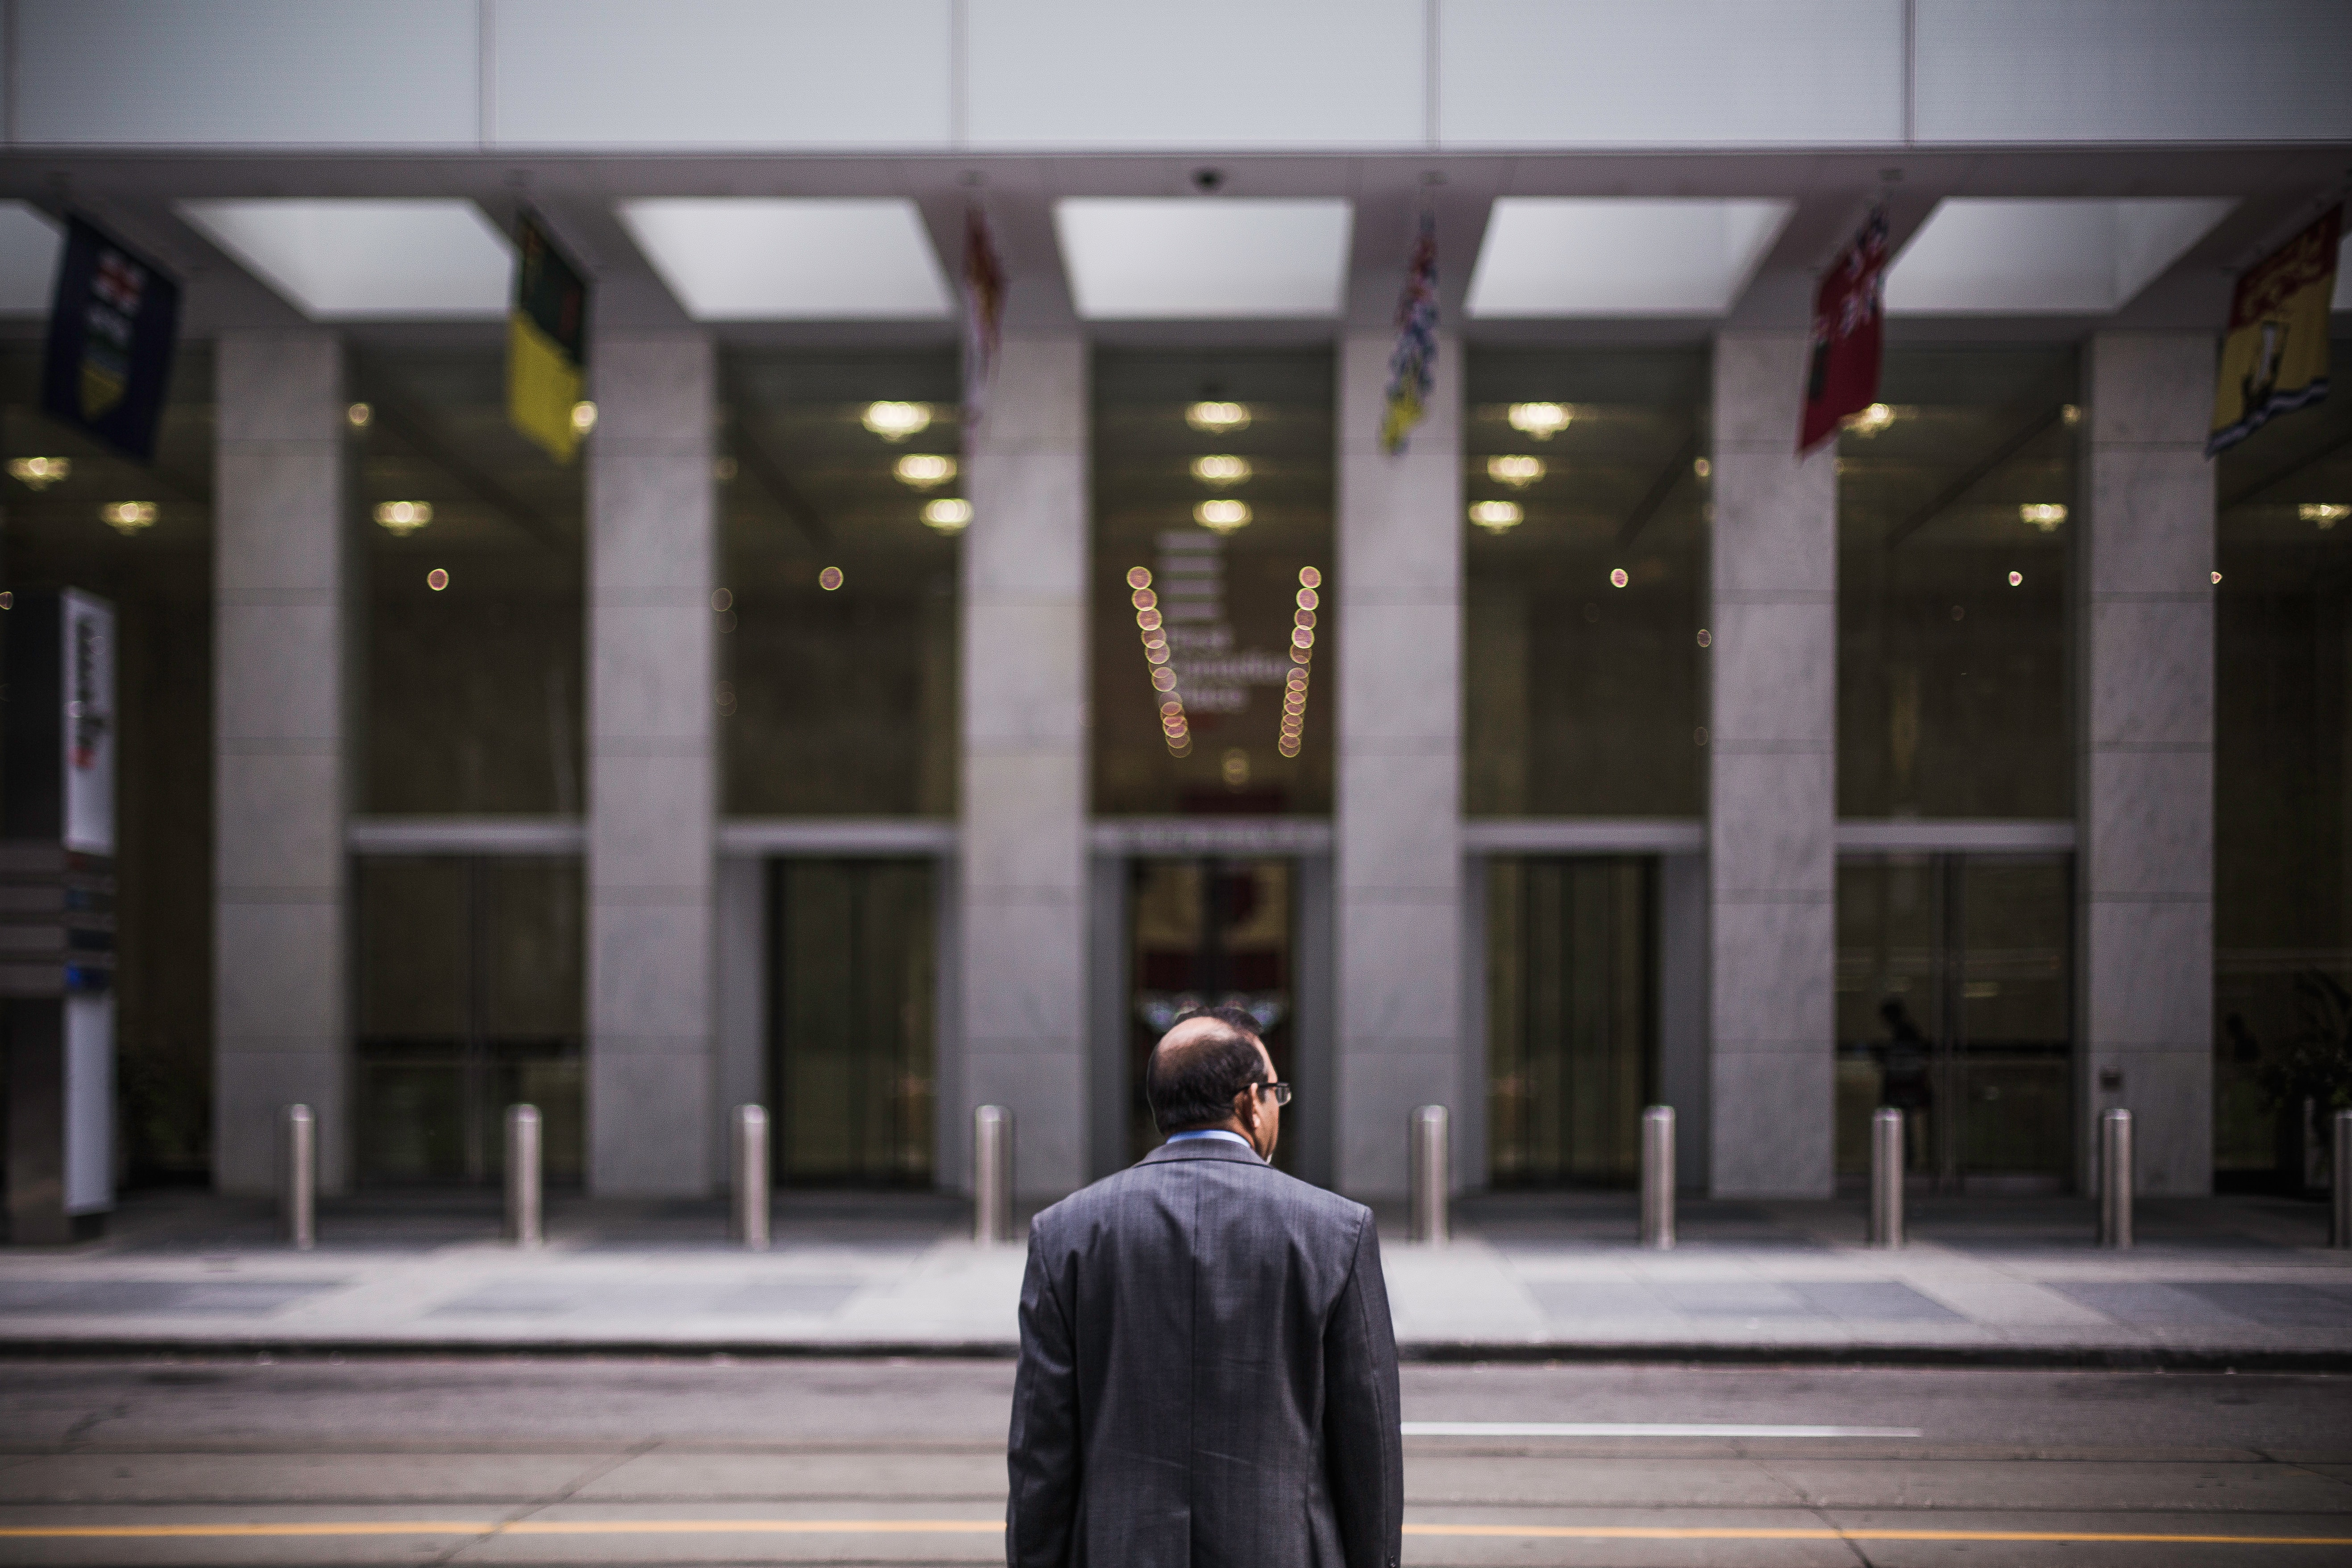 Middle-aged man stands facing away from camera toward the front of a financial/government building